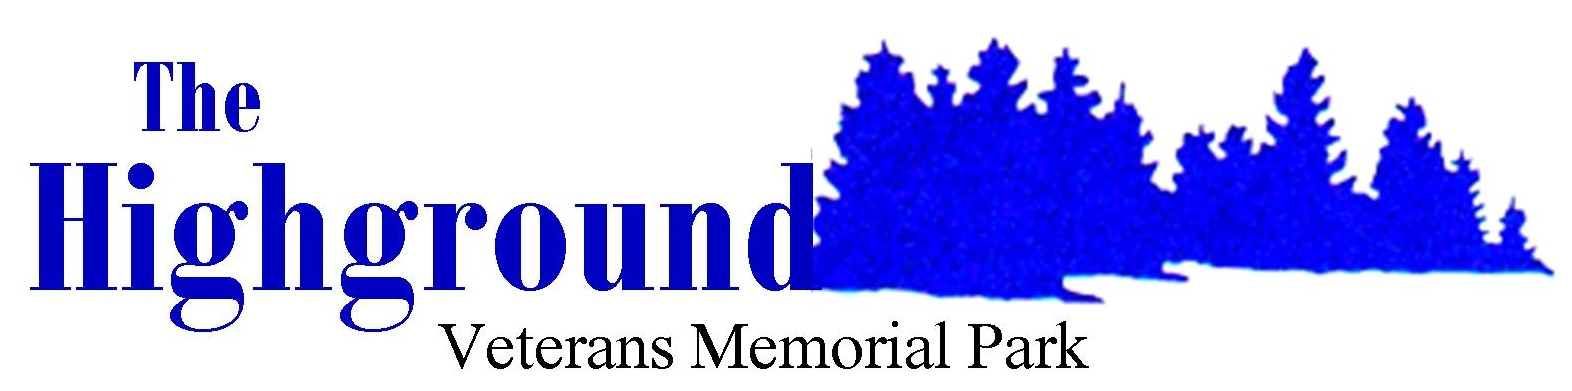 The Highground Veterans Memorial Park logo